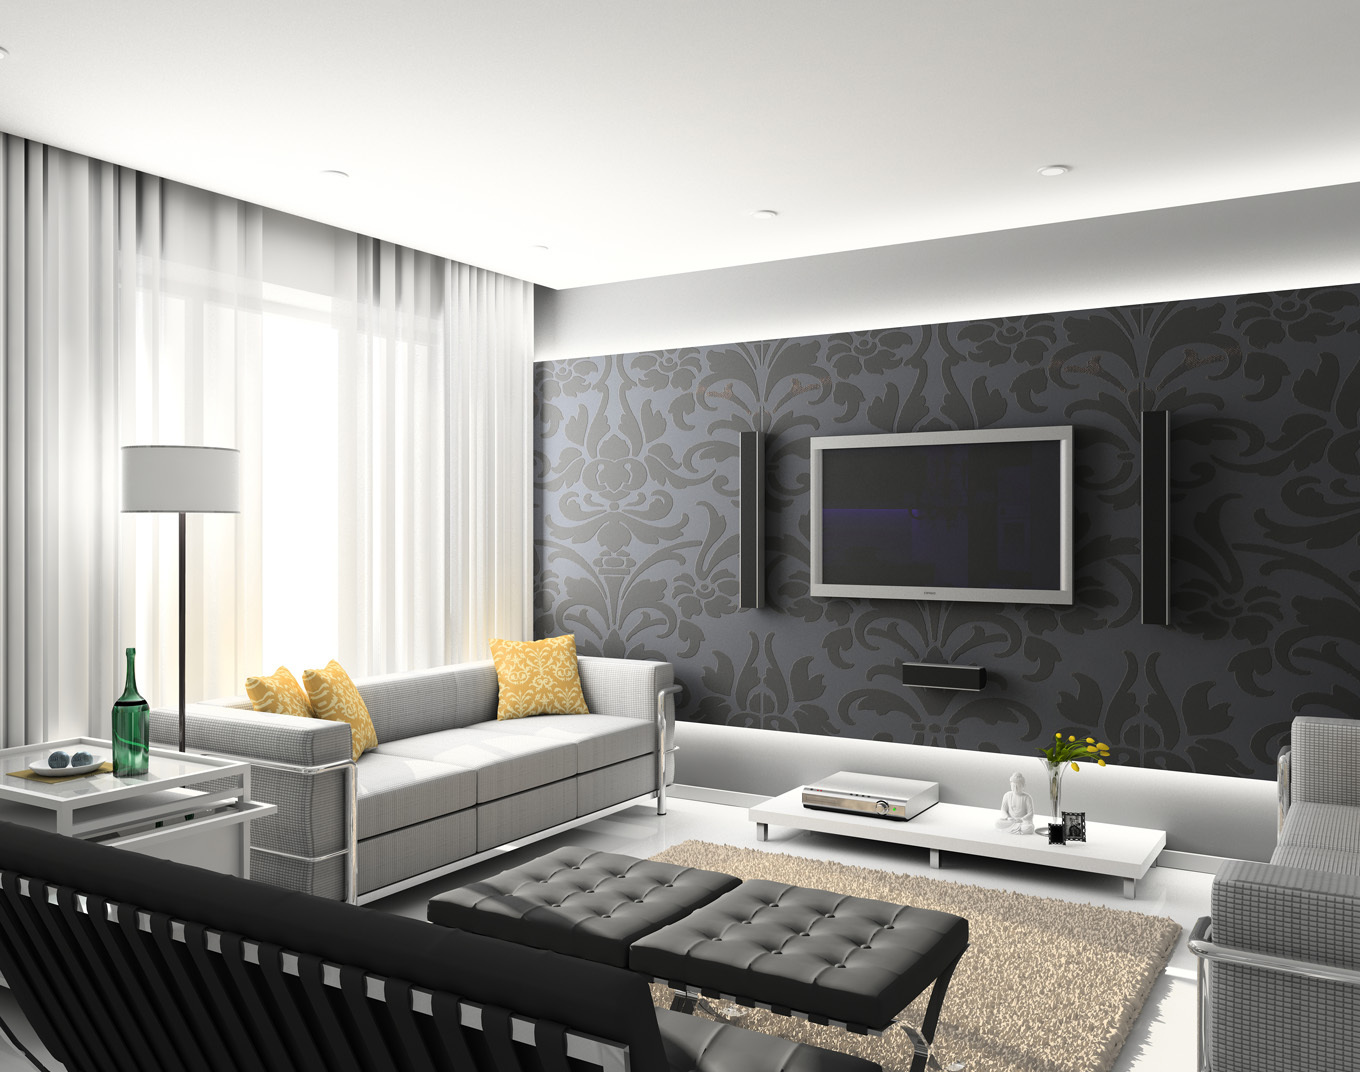 Living Room Decor Ideas With Grey Sofas And Black Bench Facing Artistic  Wallpaper Inspiration For Unique MidCityEast